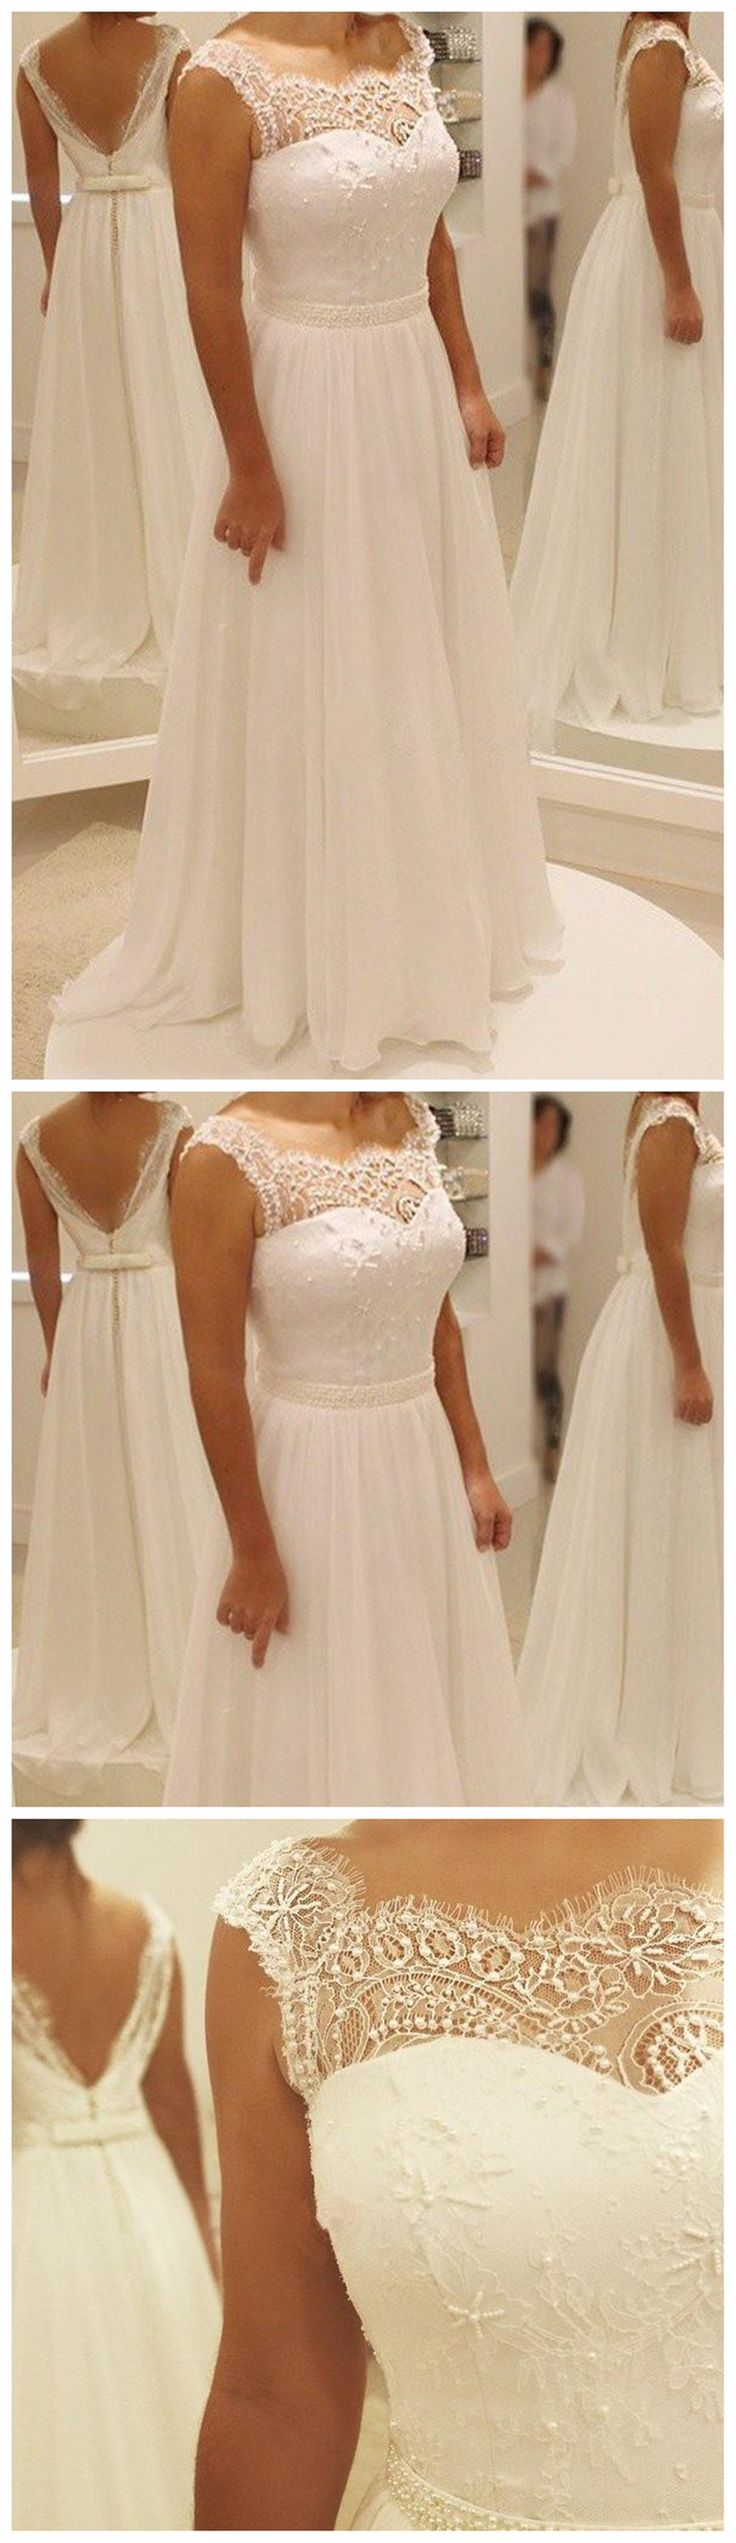 Elegant Sheath Lace Beach Wedding Party Dresses, Popular Bridal Gown, WD0096 [this is cute and simple!]